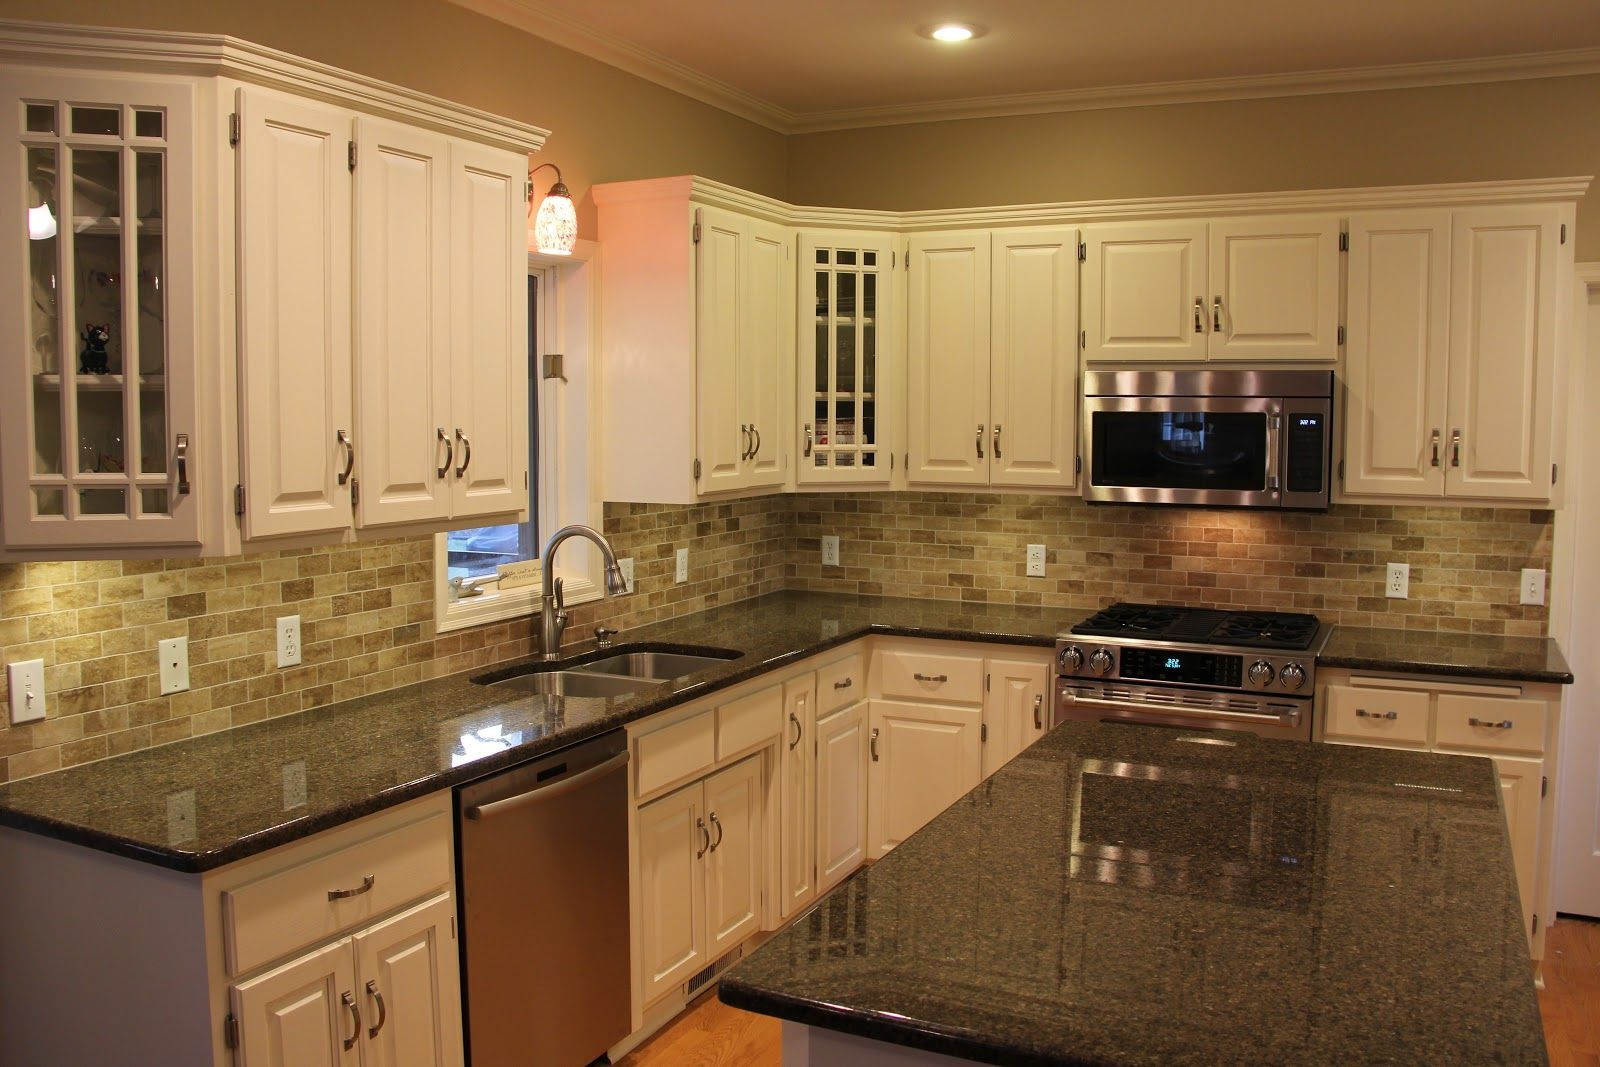 most popular granite countertops colors 2021 in 2020 on most popular interior paint colors for 2021 id=11469